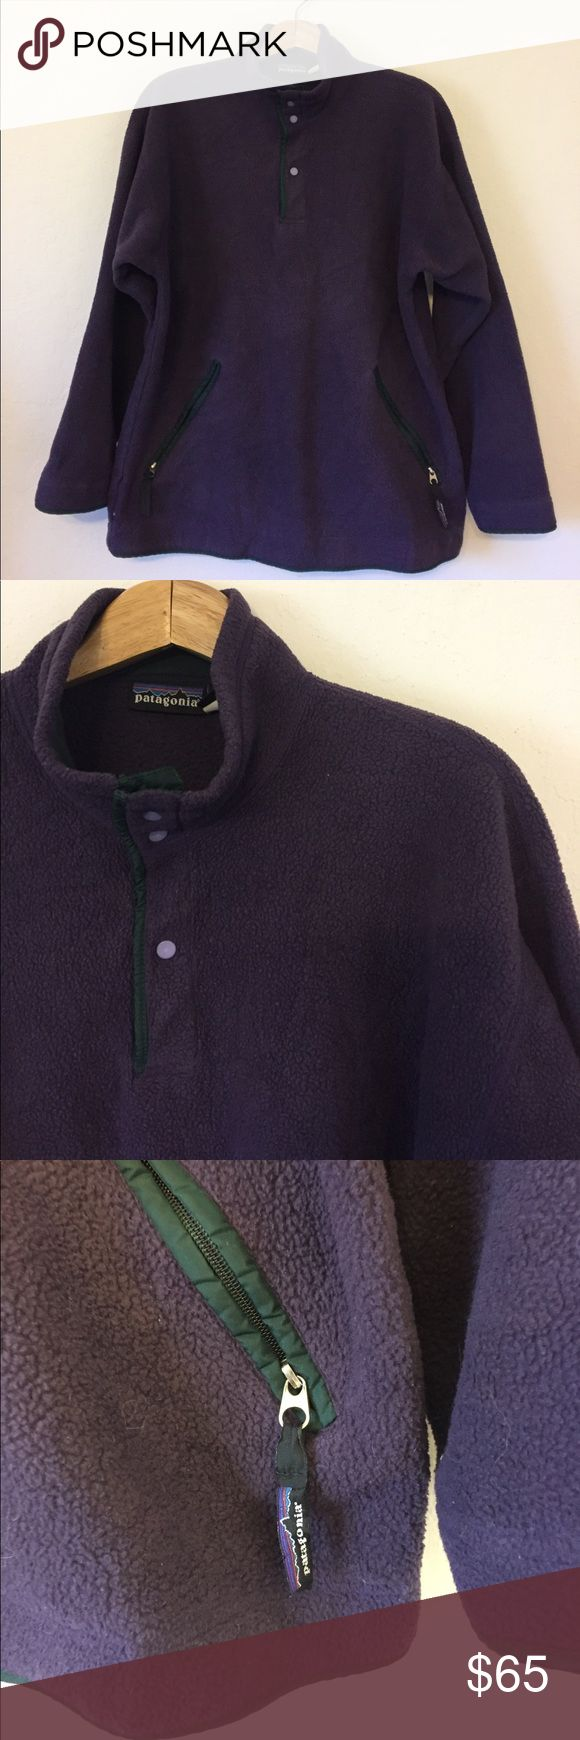 Patagonia Fleece Pullover Patagonia fleece pullover.  Features two zippered side pockets and adjustable elastic at bottom to keep the warmth in and the cold out.  In great, gently used condition. Patagonia Jackets & Coats